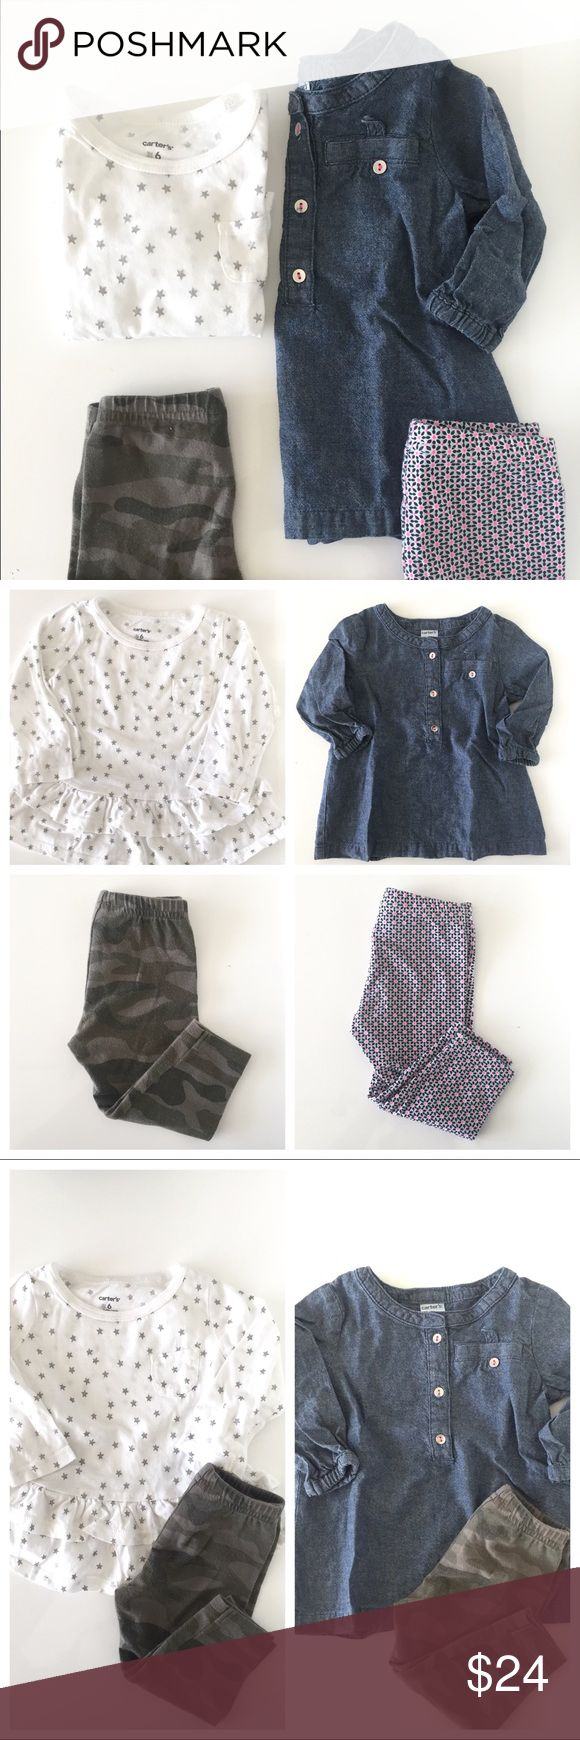 CARTERS 6M Bundle Adorable bundle of 2 Carters 6M / All interchangeable to create 4 different outfits! / Worn 1x, excellent condition / 100% cotton. Machine wash / Pet-free & smoke free home.  ♦️ Chambray Button down Long Sleeve w/Front Pocket  ♦️ Camo leggings  ♦️ Geometric Pattern leggings  ♦️ Star Long-sleeve w/ ruffled bottom  Hope you enjoy! Carter's Matching Sets